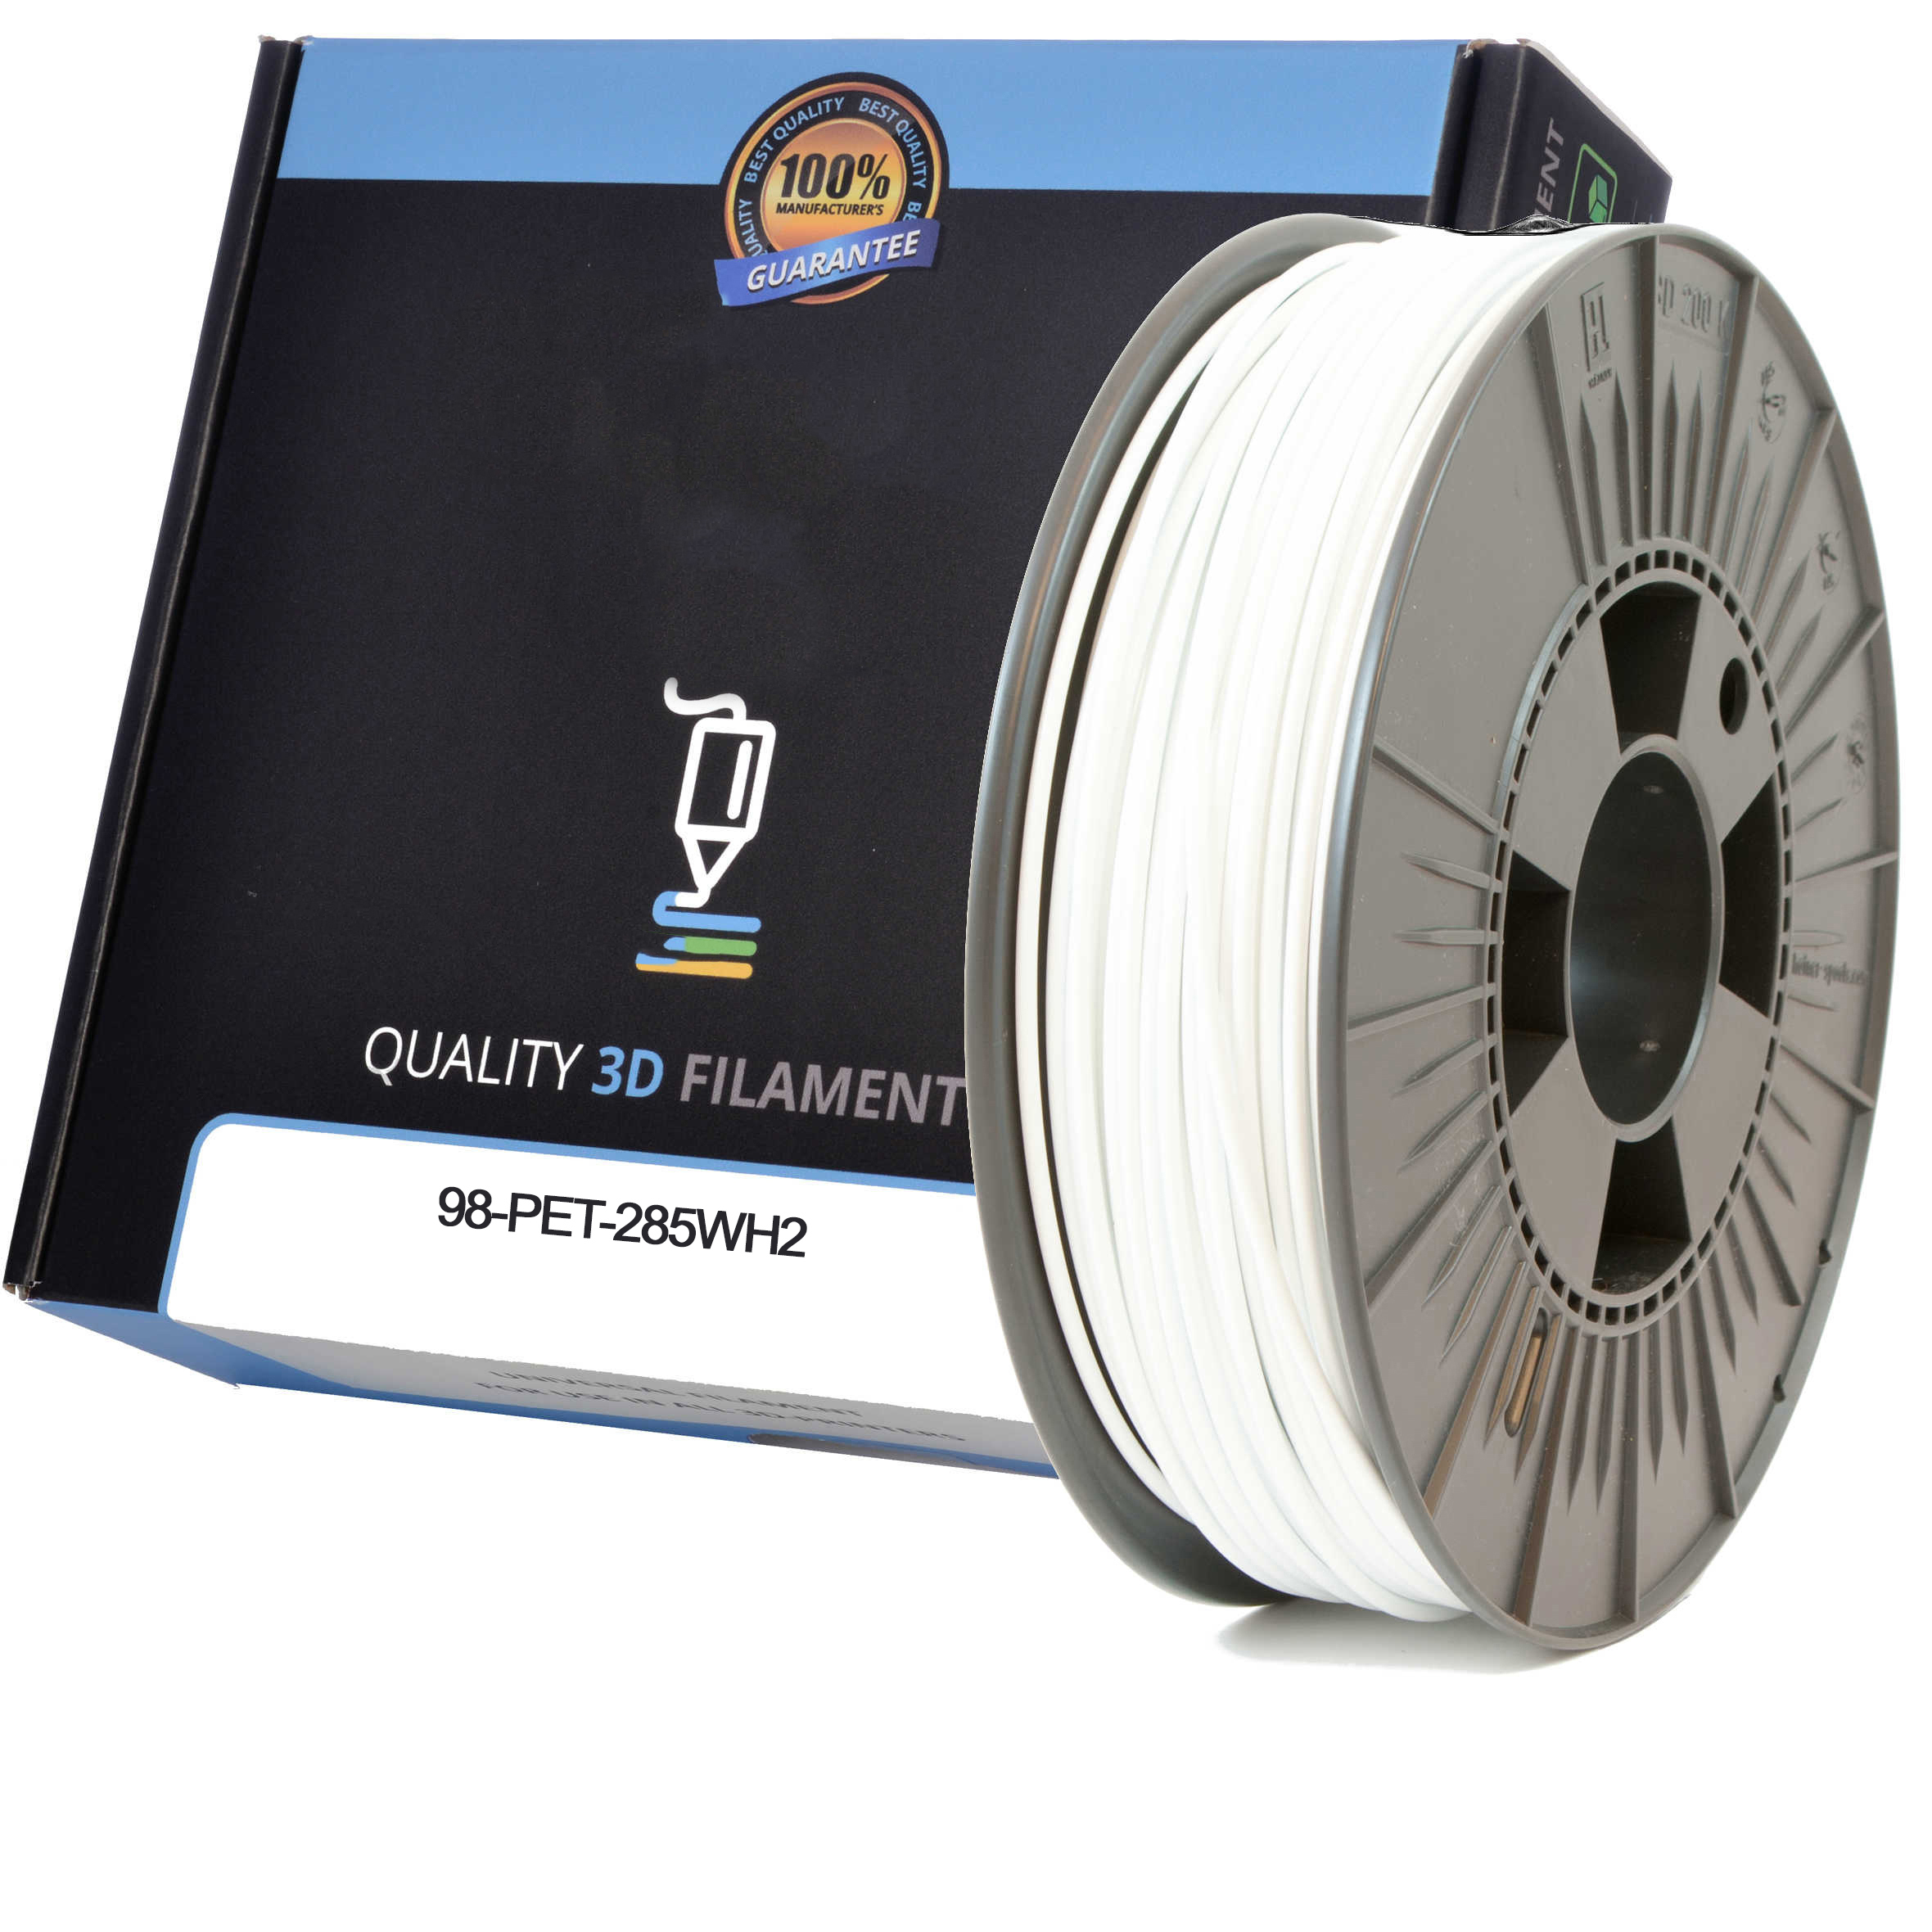 Premium Compatible PETG 2.85mm Snow White 0.5kg 3D Filament (98-PET-285WH2)